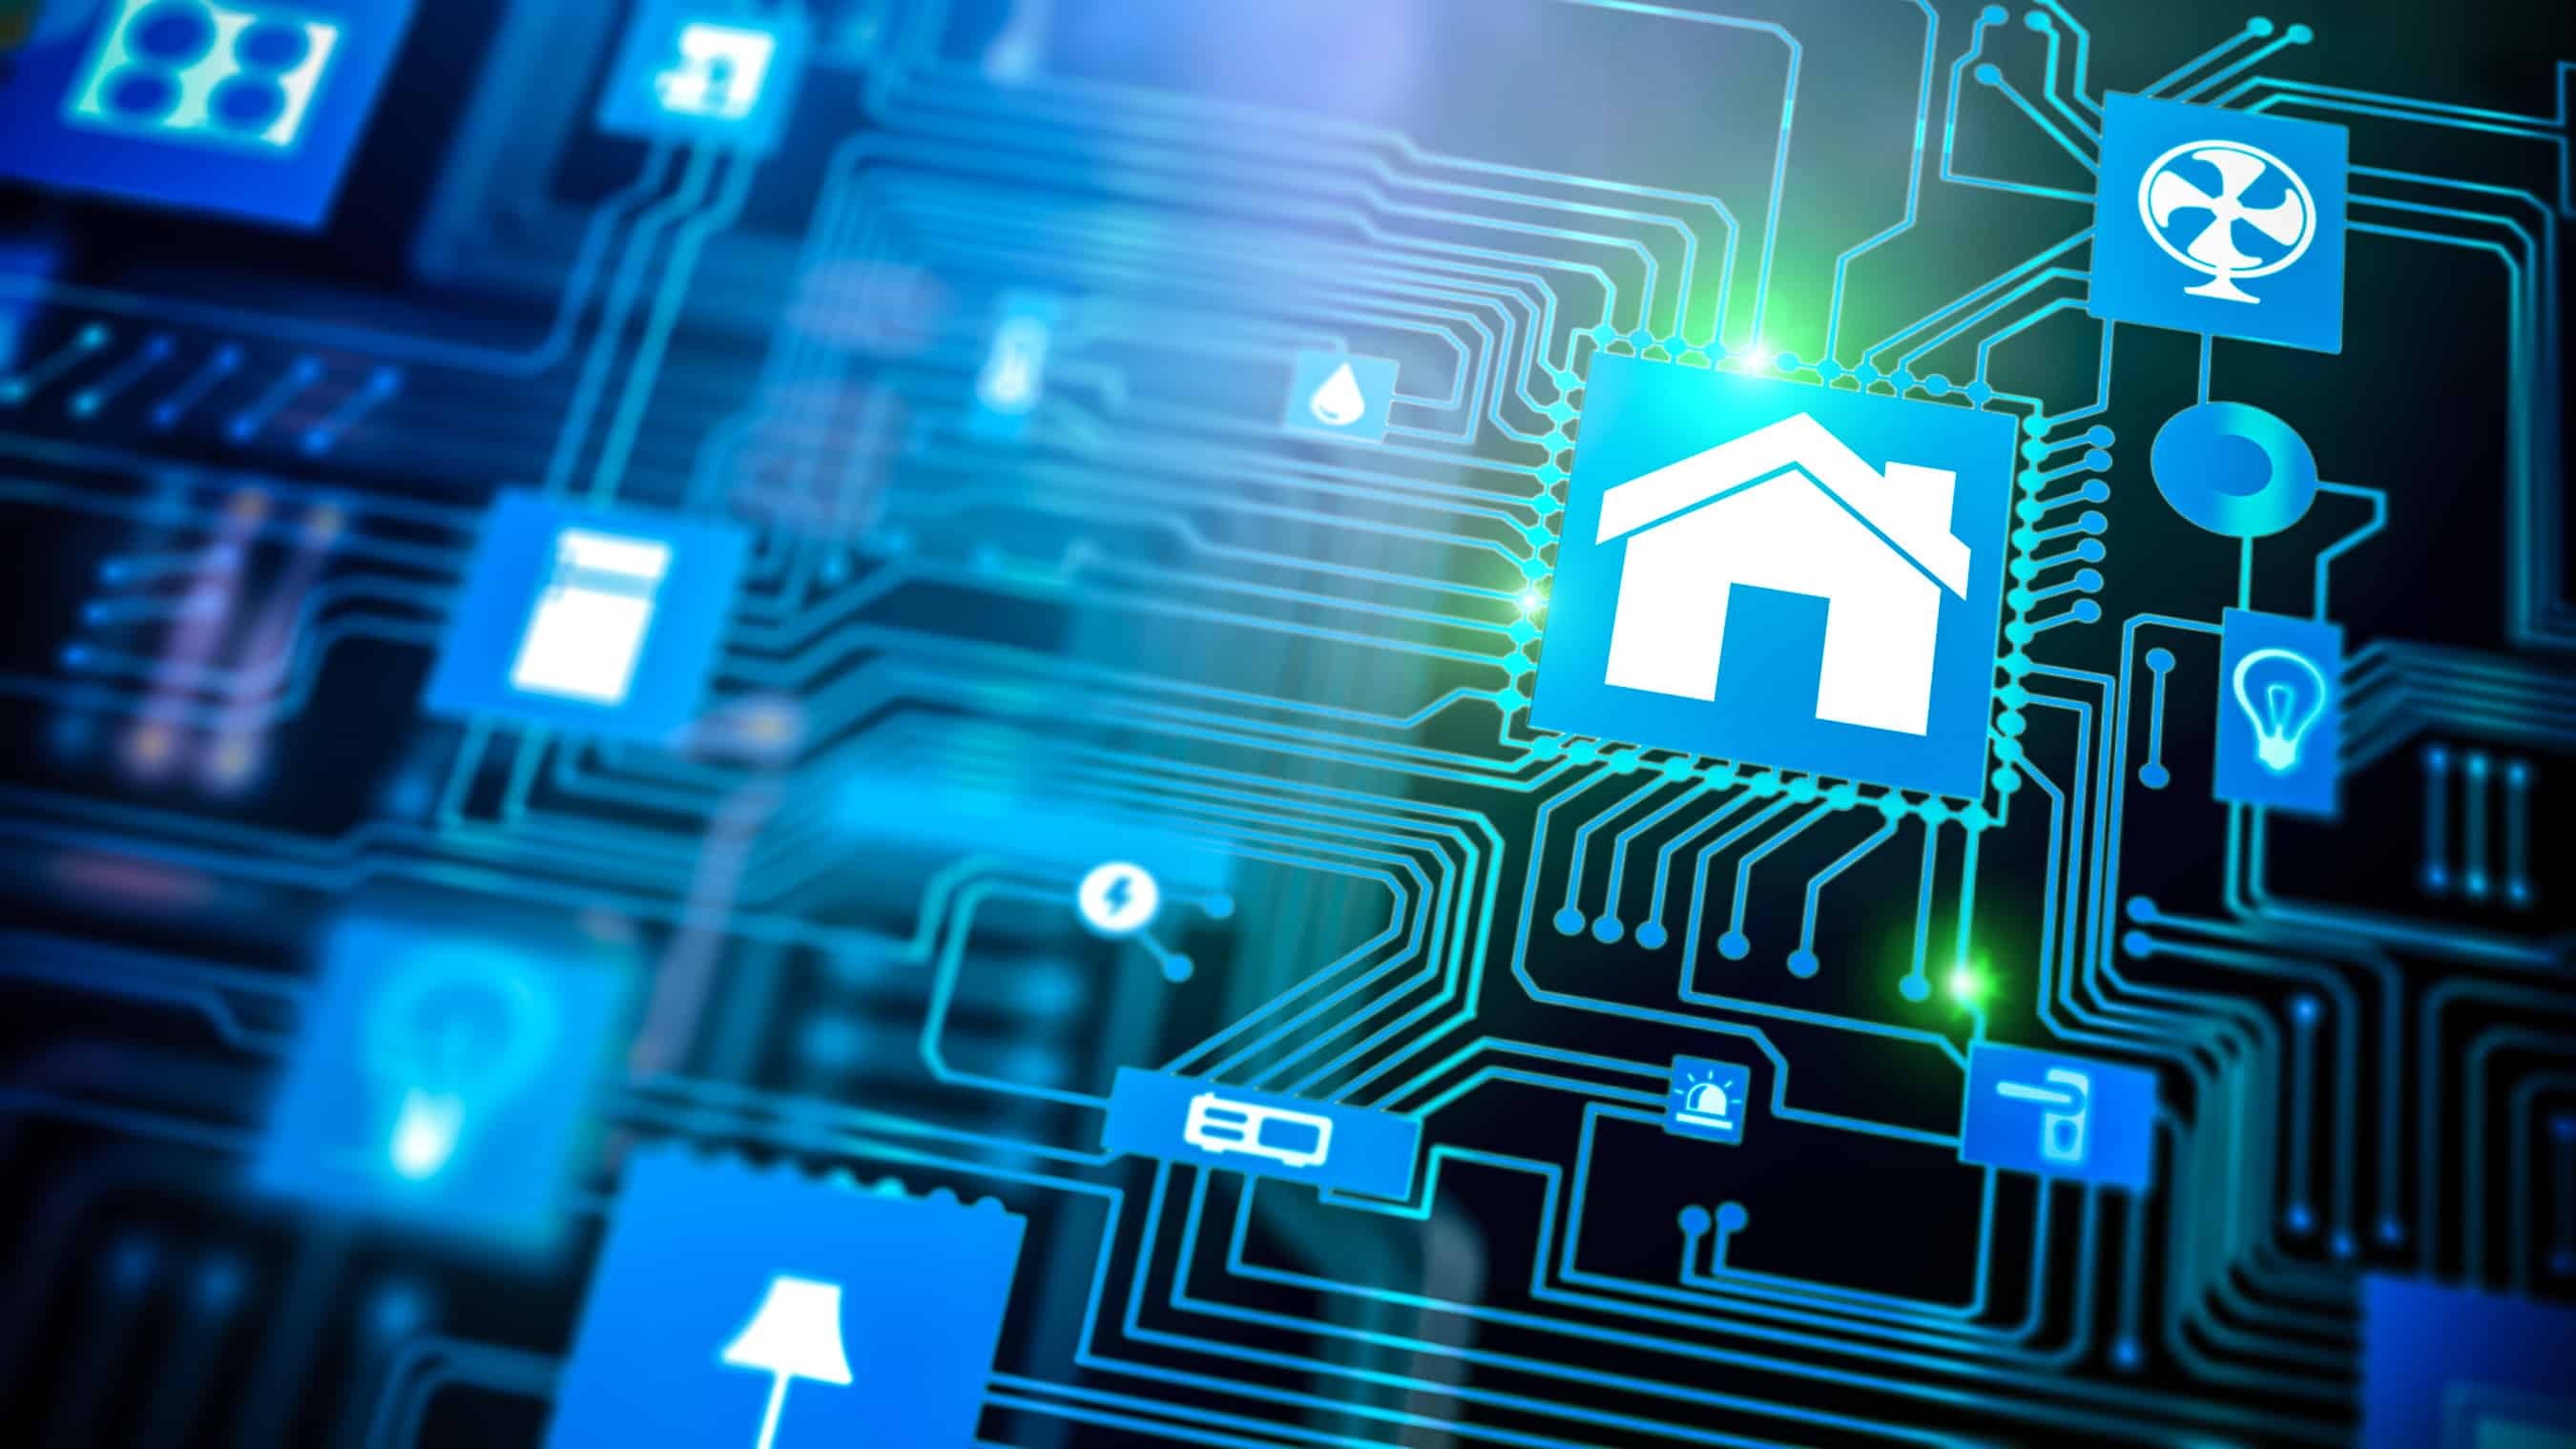 Smart Home Network Safety: WiFi vs. Cellular